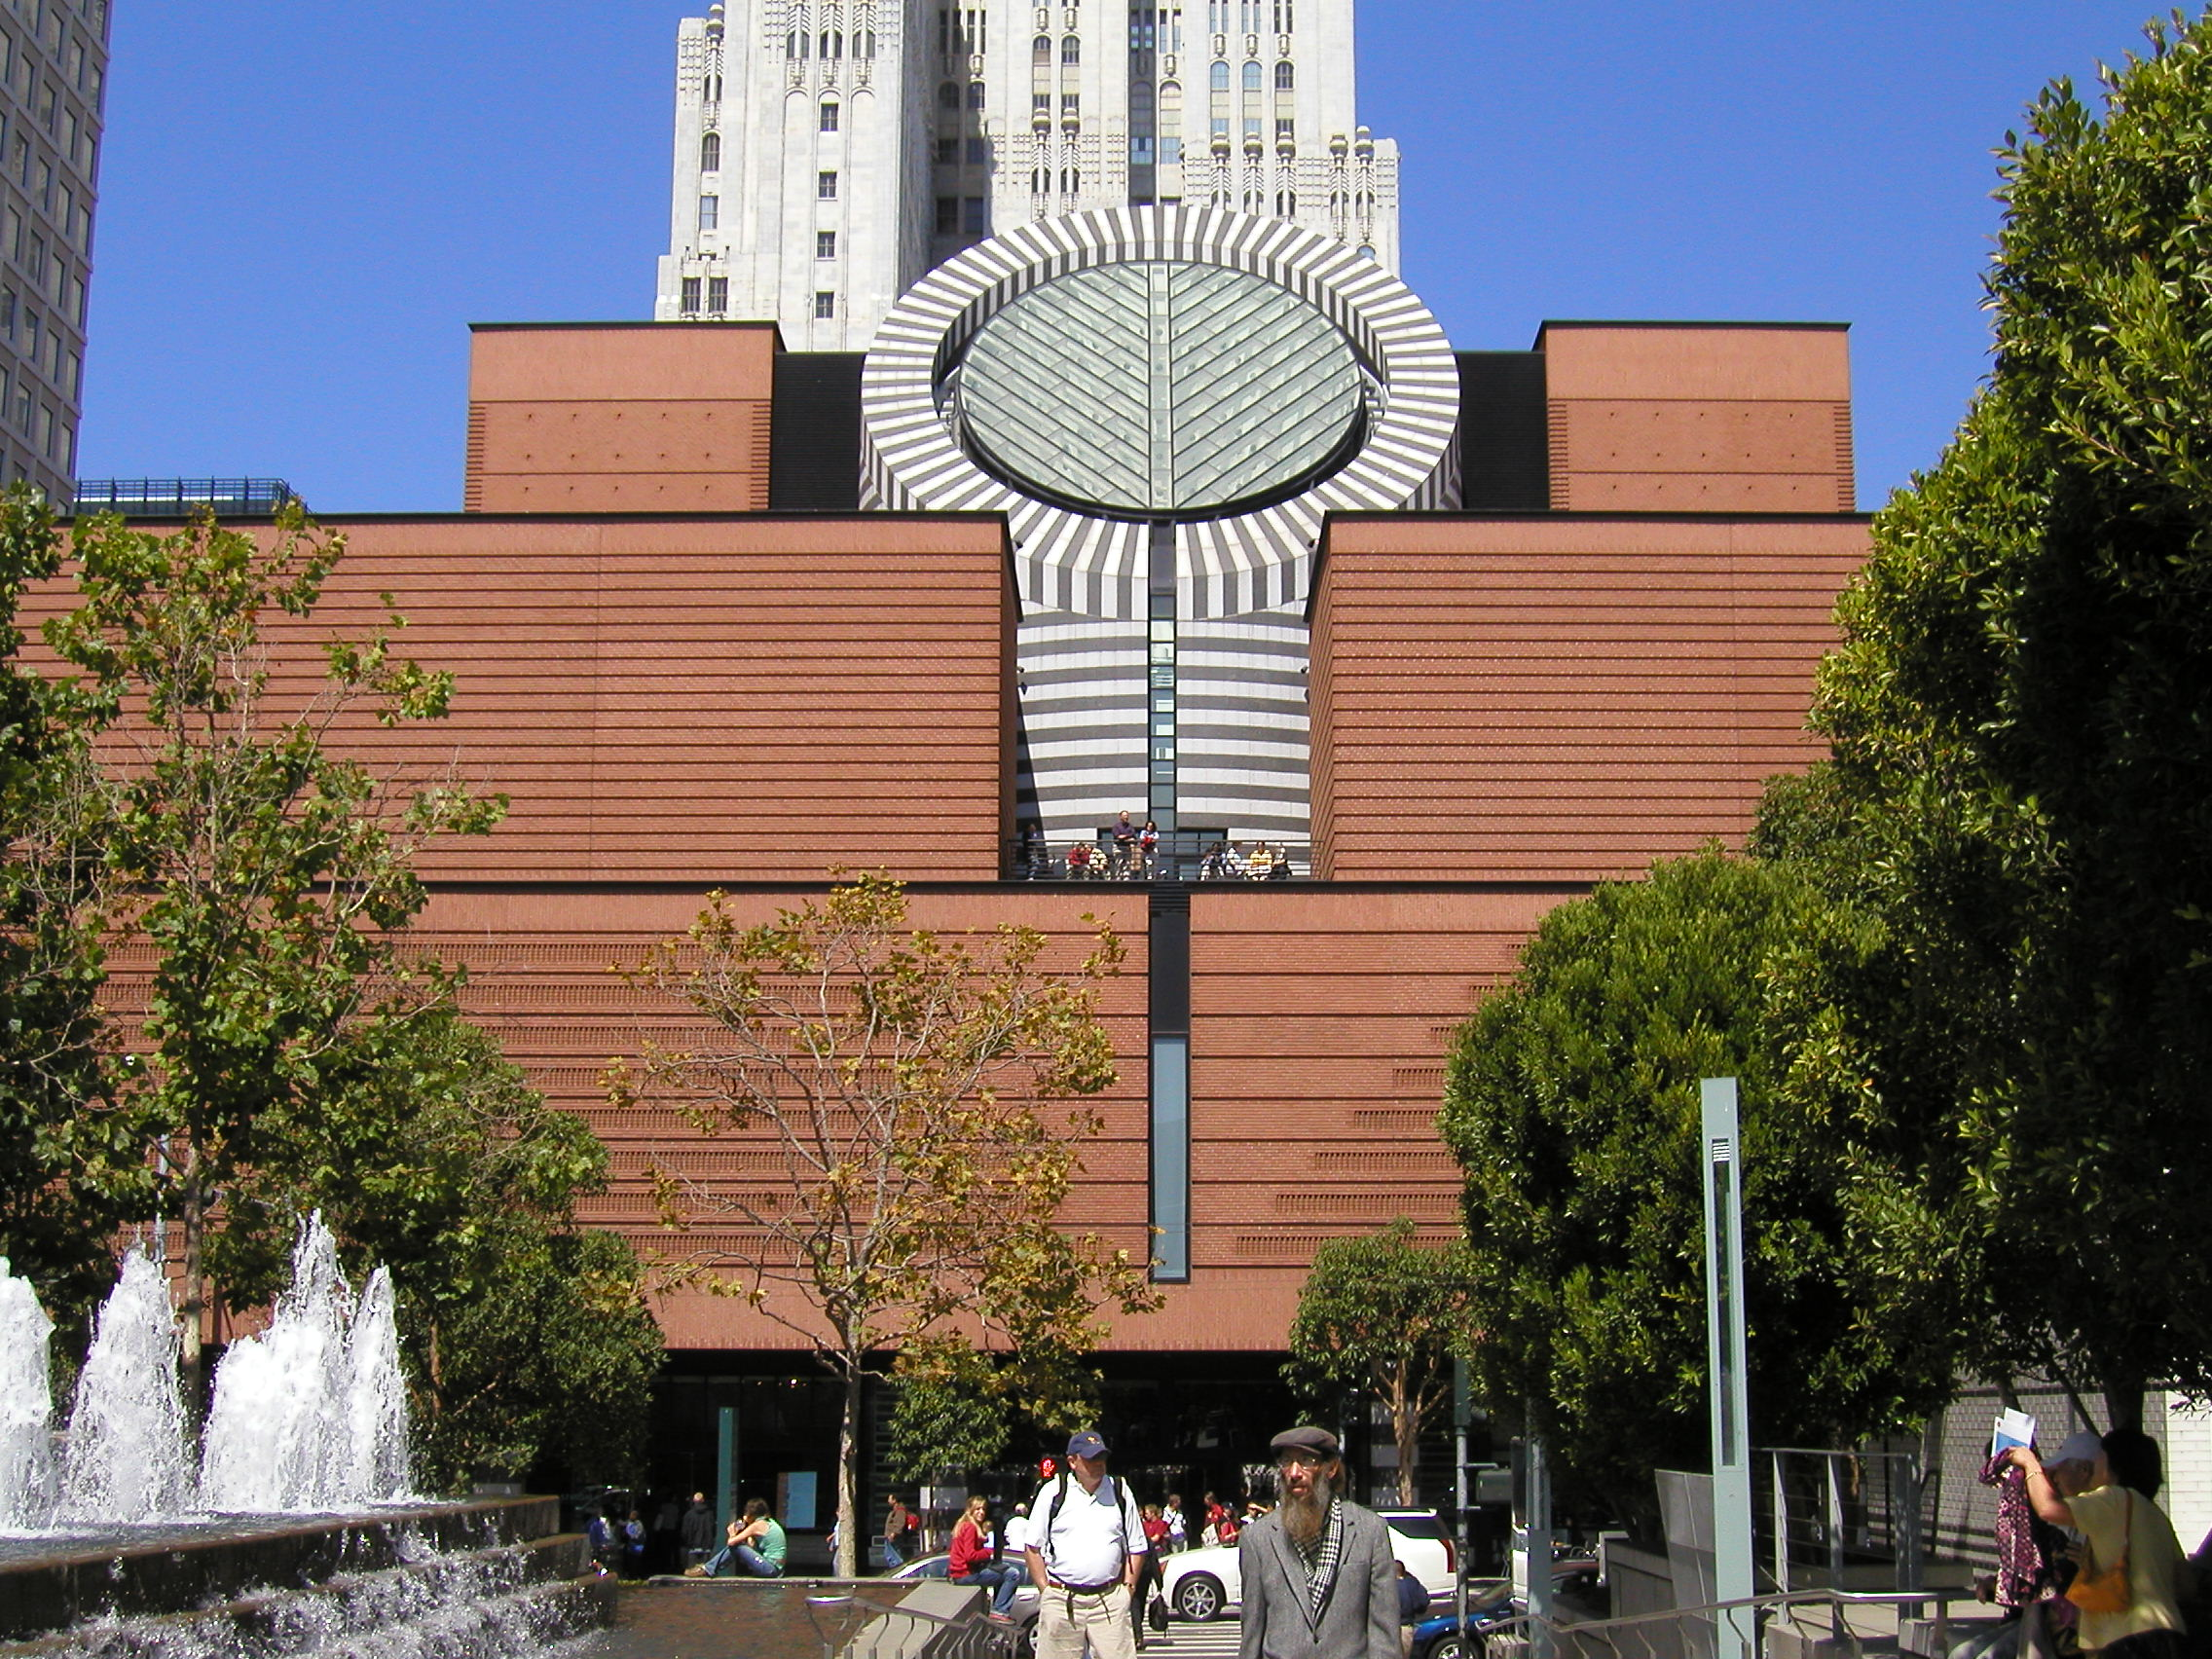 The San Francisco Museum of Modern Art opened in 1935, becoming the first museum on the West Coast devoted solely to modern art.